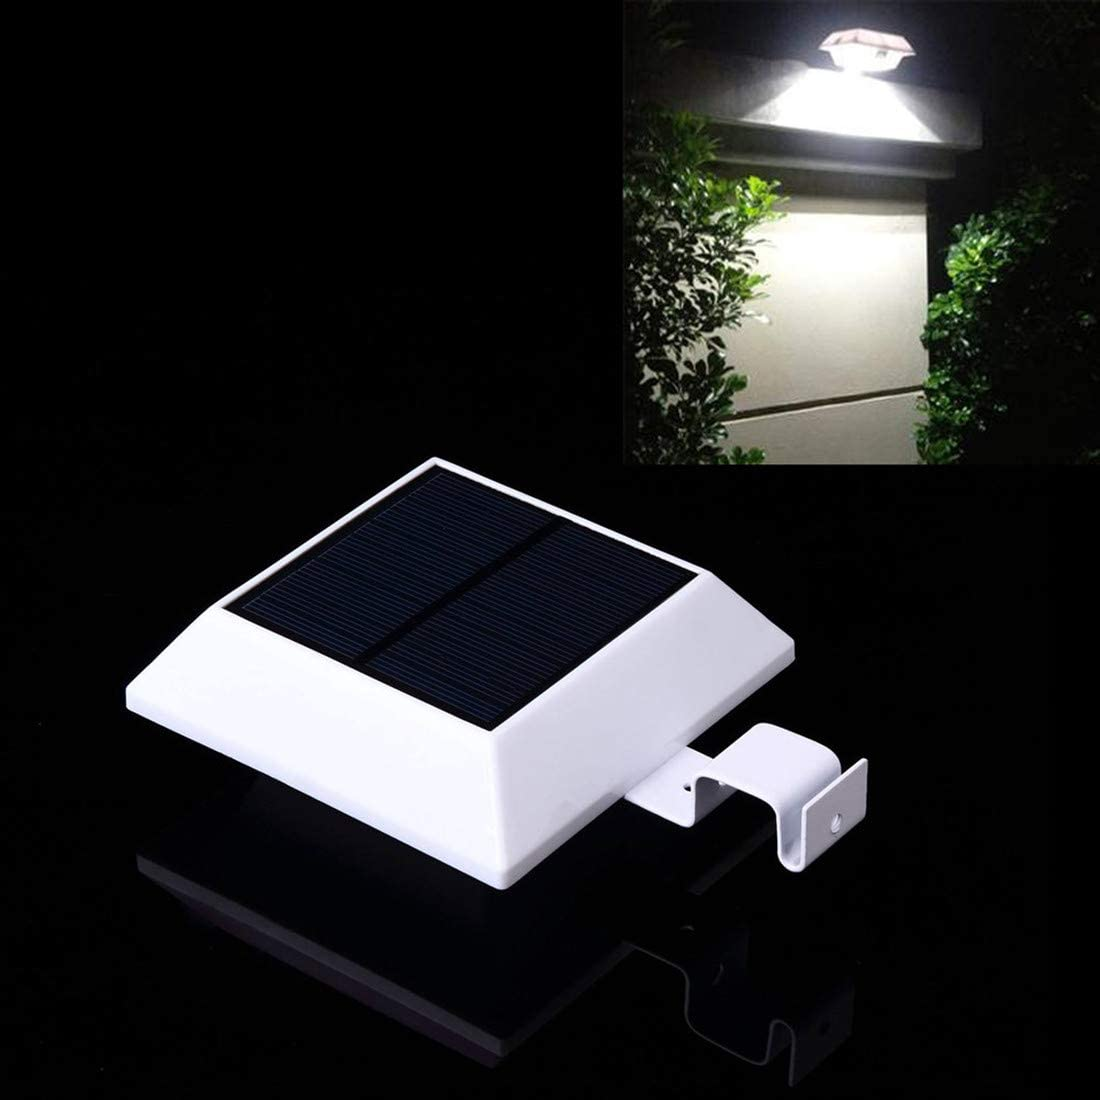 Solar Motion Sensor Light Outdoor 150LM Brighter Design/PIR Sensor Solar Powered Led/Waterproof Durable/Fence Wall Driveway Garden Patio Path Decking Light White Light